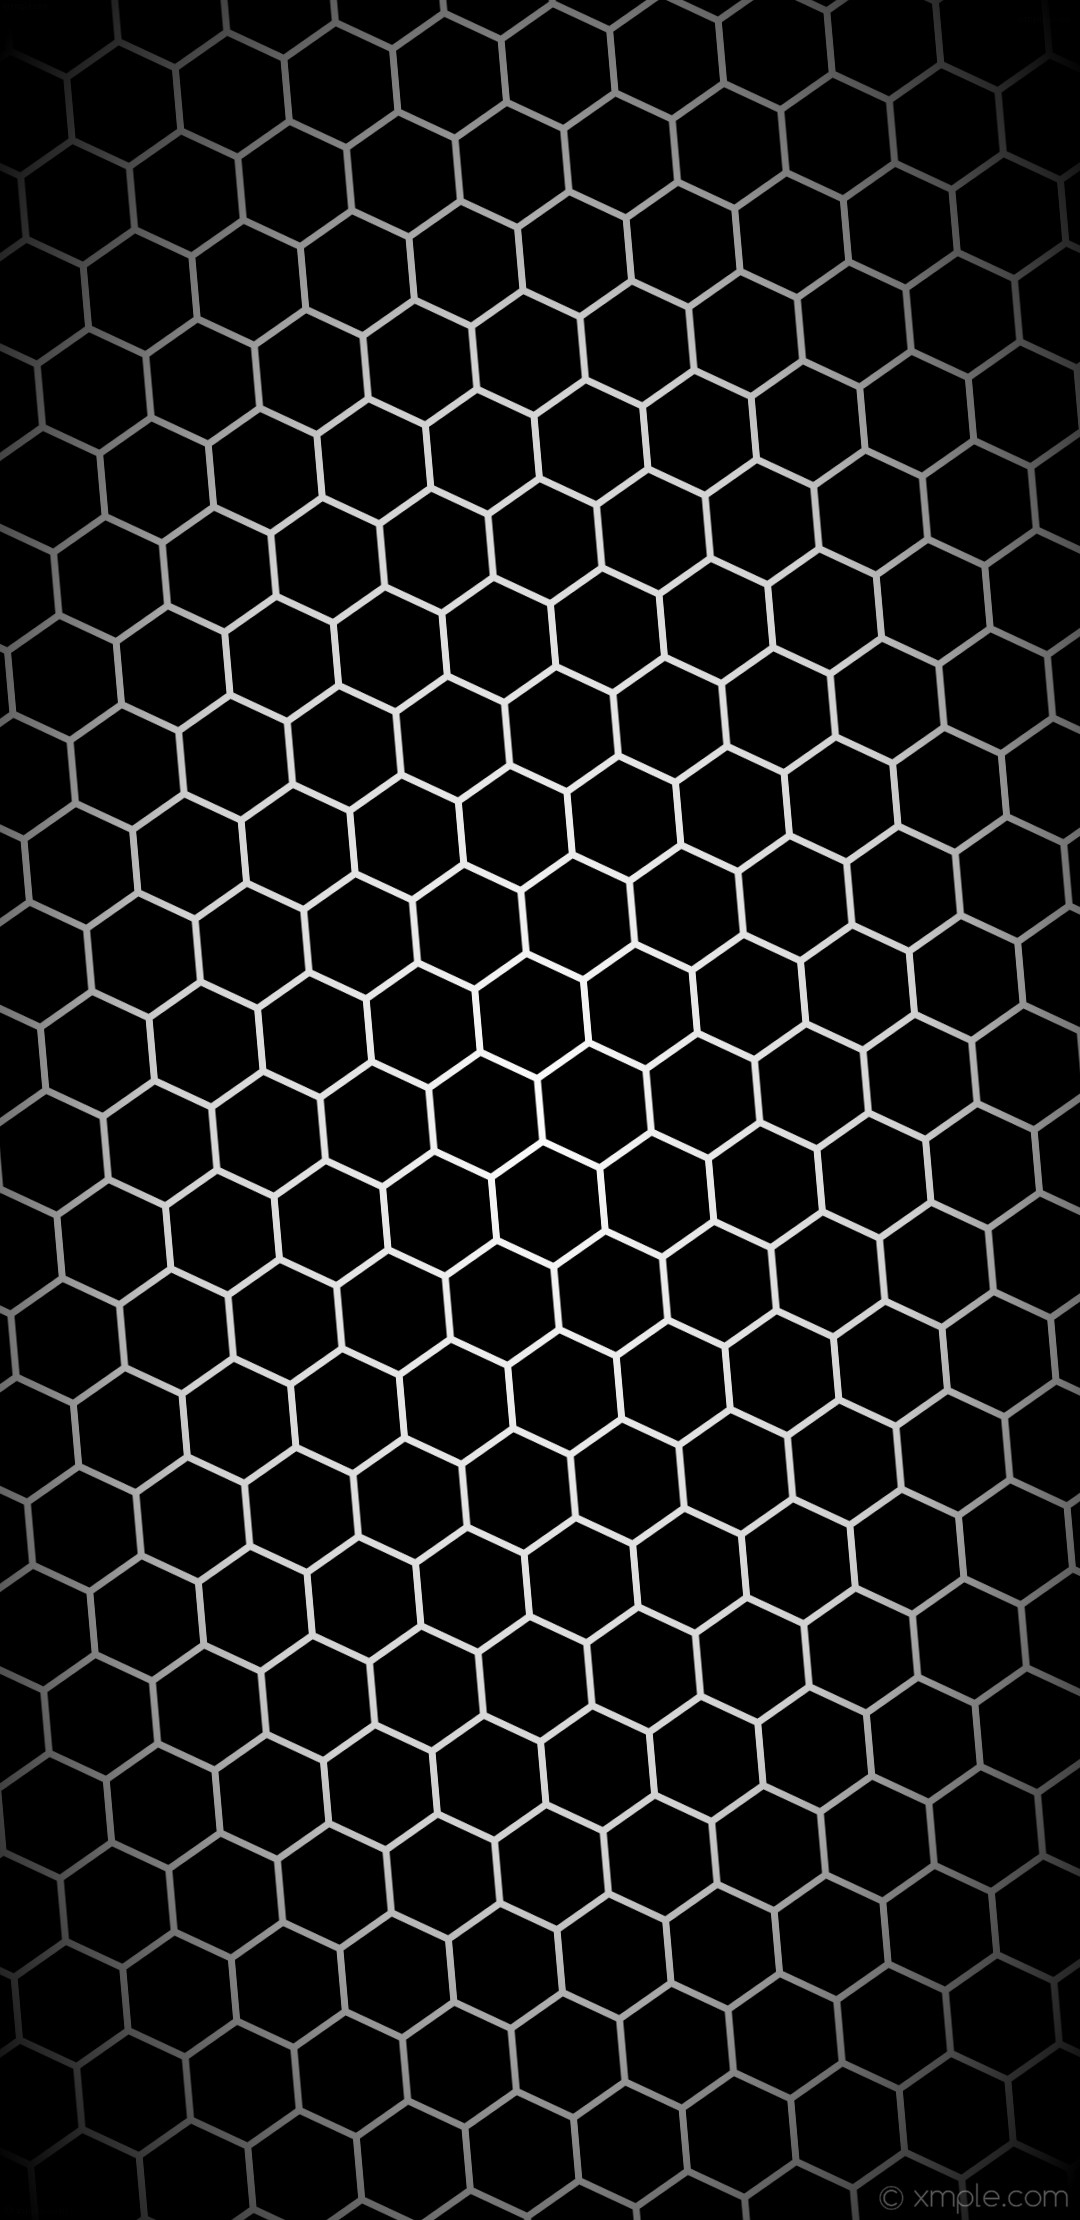 1080x2220 wallpaper black hexagon white gradient glow grey light gray #000000 #ffffff  #d3d3d3 diagonal